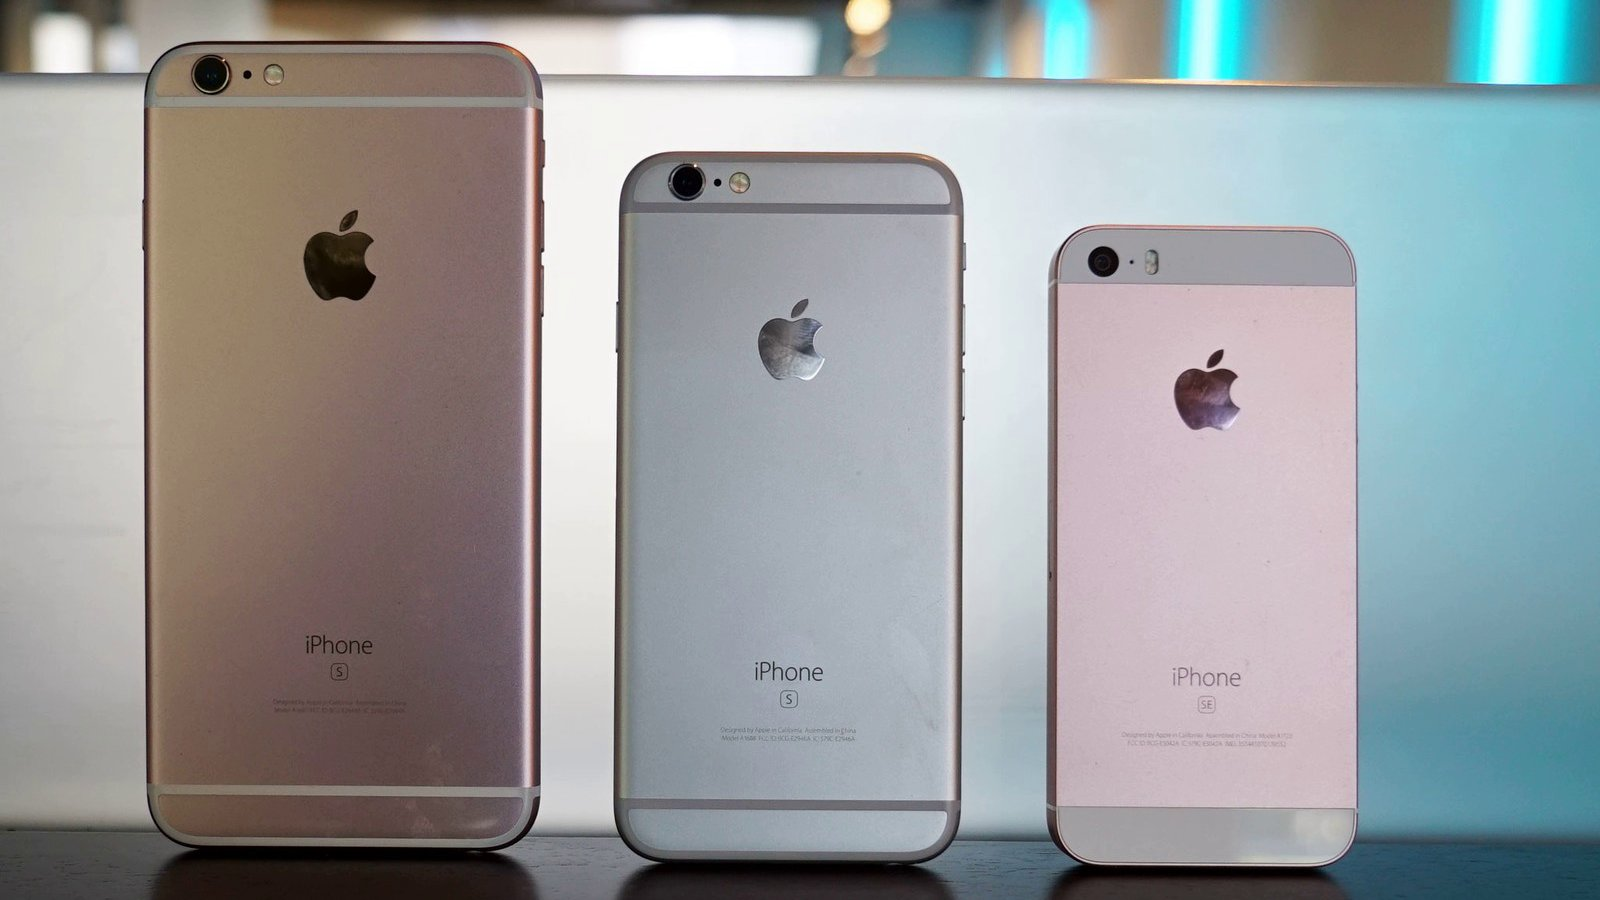 iPhone 6S Plus, iPhone 6S and iPhone SE